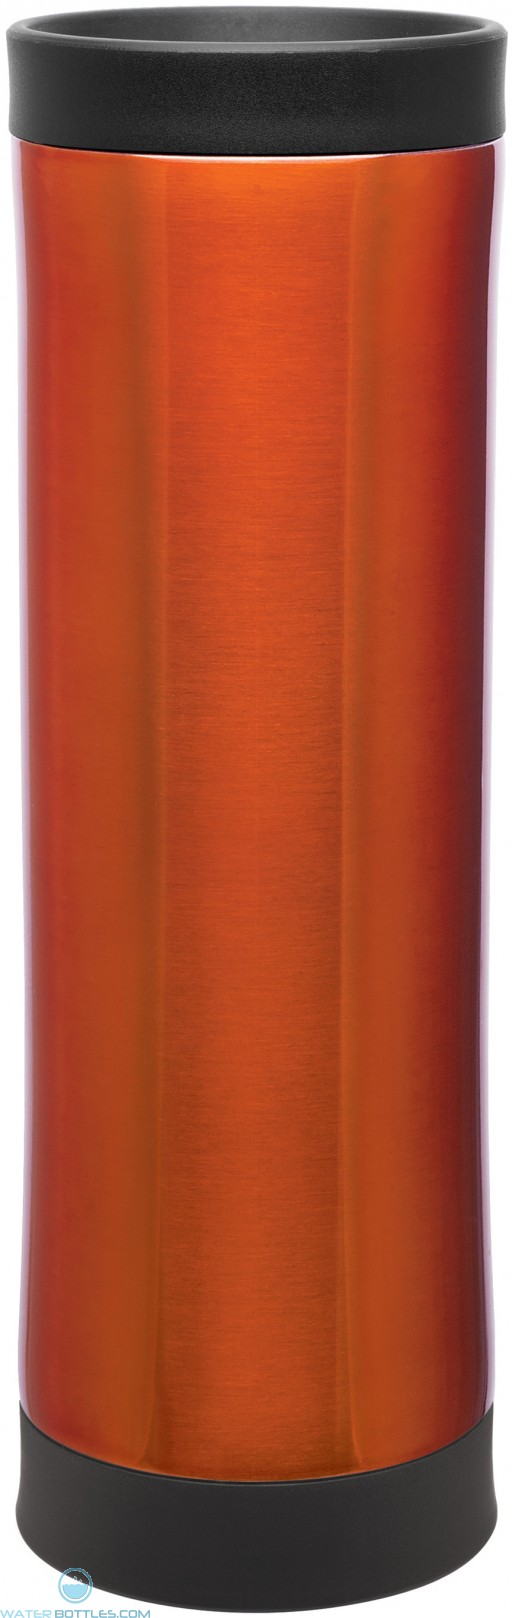 Americano Double Wall Thermal Tumblers | 16 oz - Orange